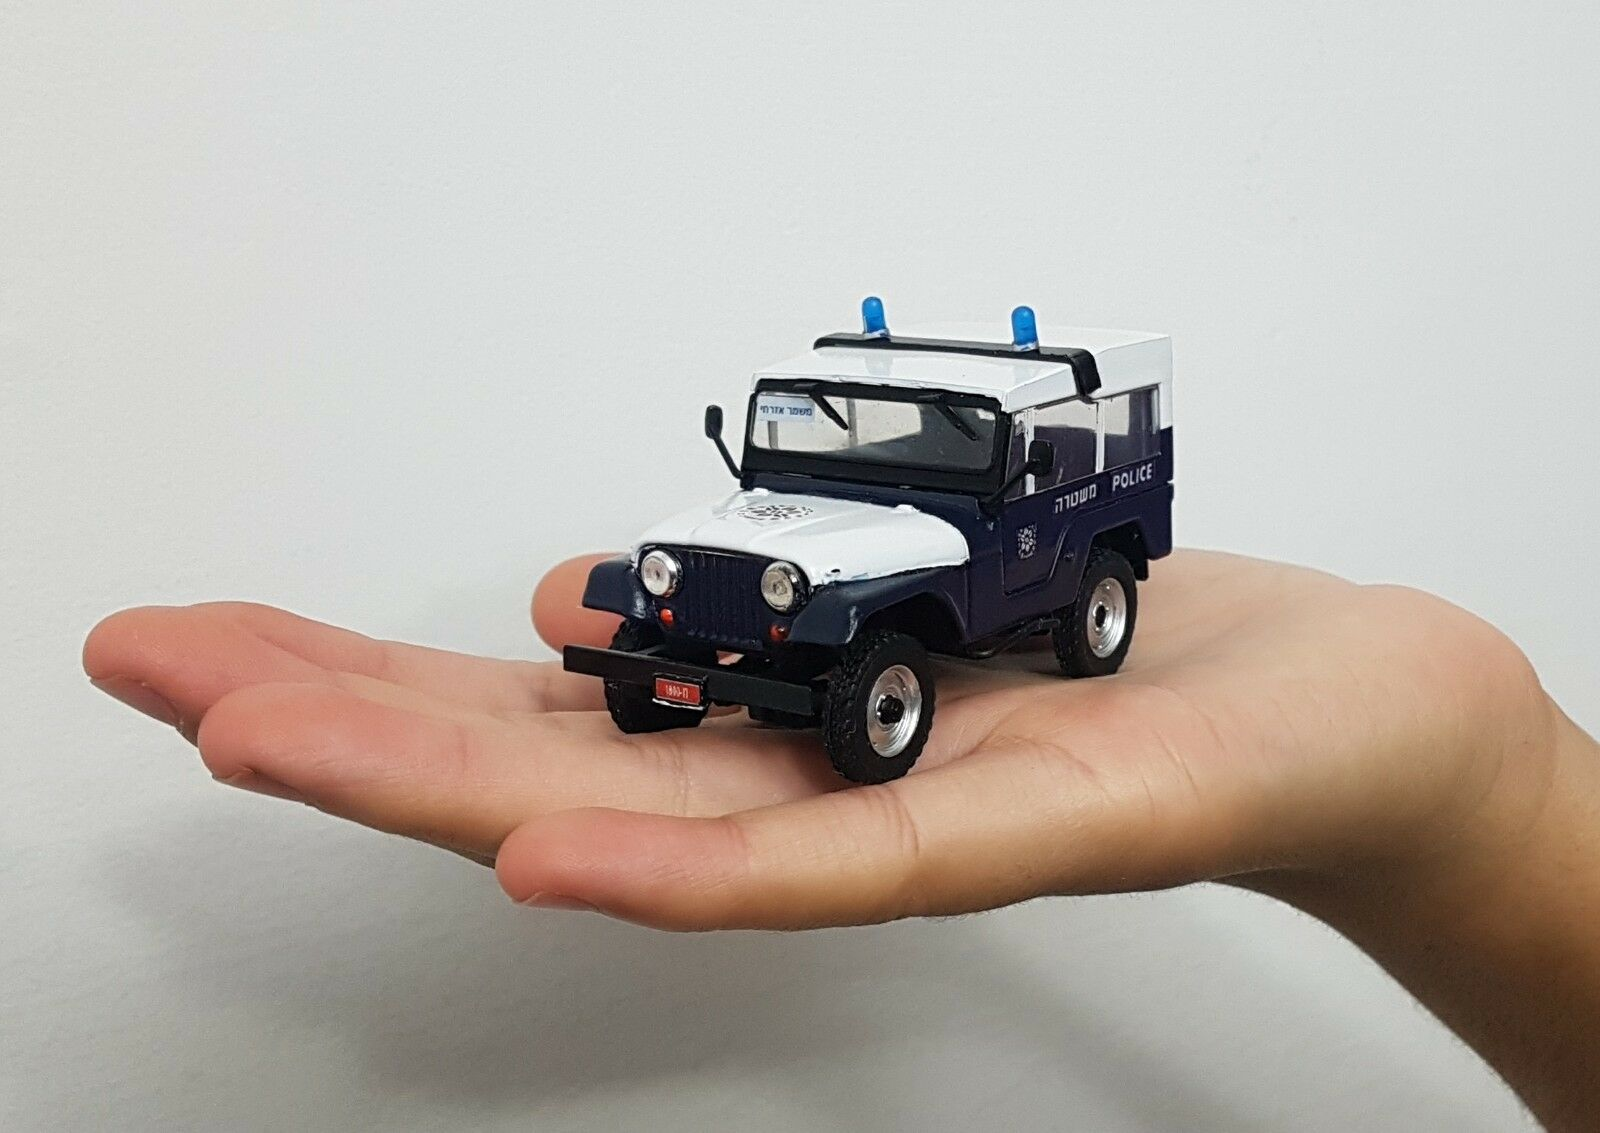 ;) VERY RARE ISRAEL POLICE CAR JEEP CJ5 SCALE 1 43 MODEL  BEST GIFT